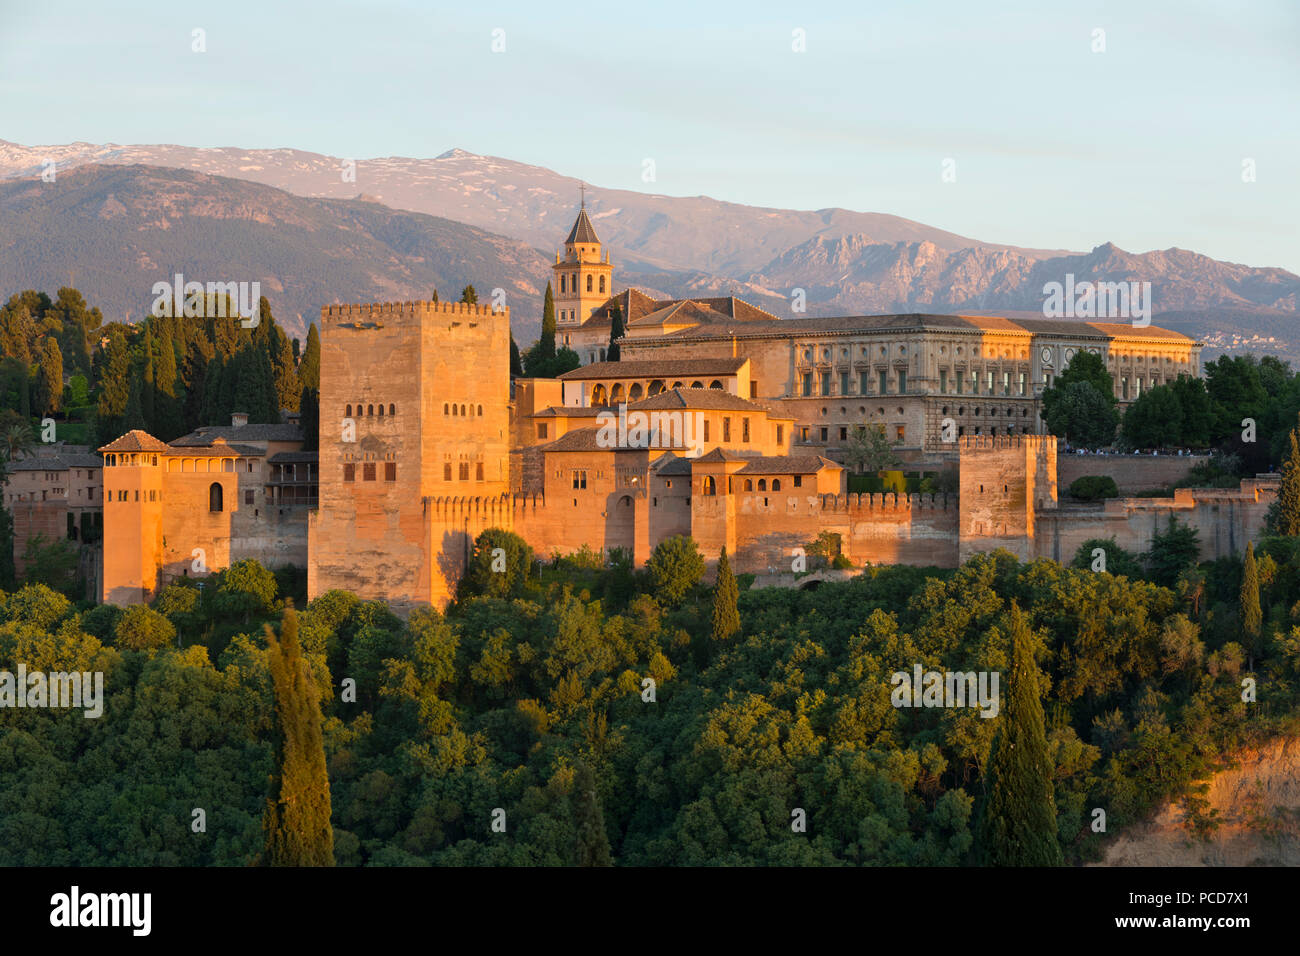 The Alhambra, UNESCO World Heritage Site, and Sierra Nevada mountains in evening light from Mirador de San Nicolas, Granada, Andalucia, Spain, Europe - Stock Image